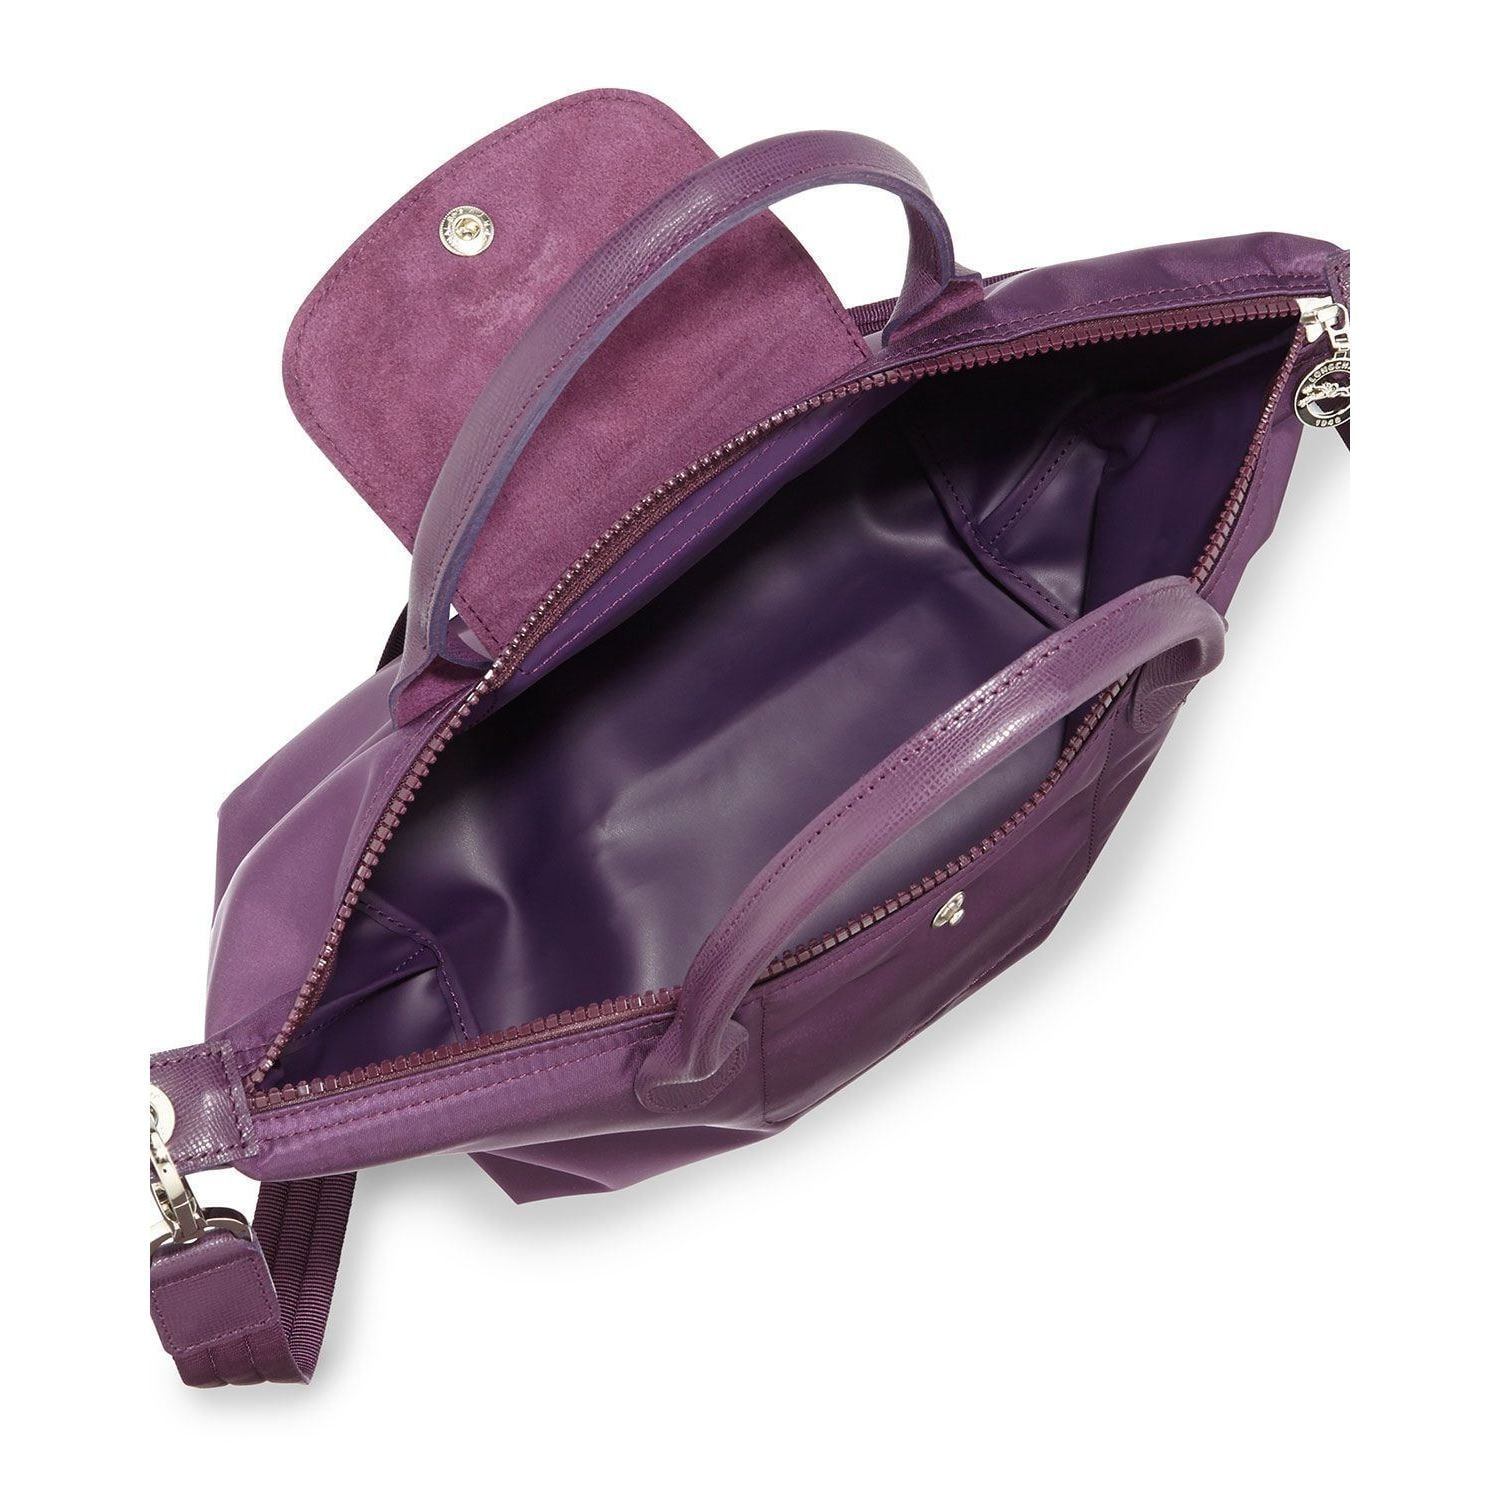 a9114592e9b9 Shop Longchamp Le Pliage Neo Bilberry Purple Canvas Tote Bag - Free  Shipping Today - Overstock - 13251346